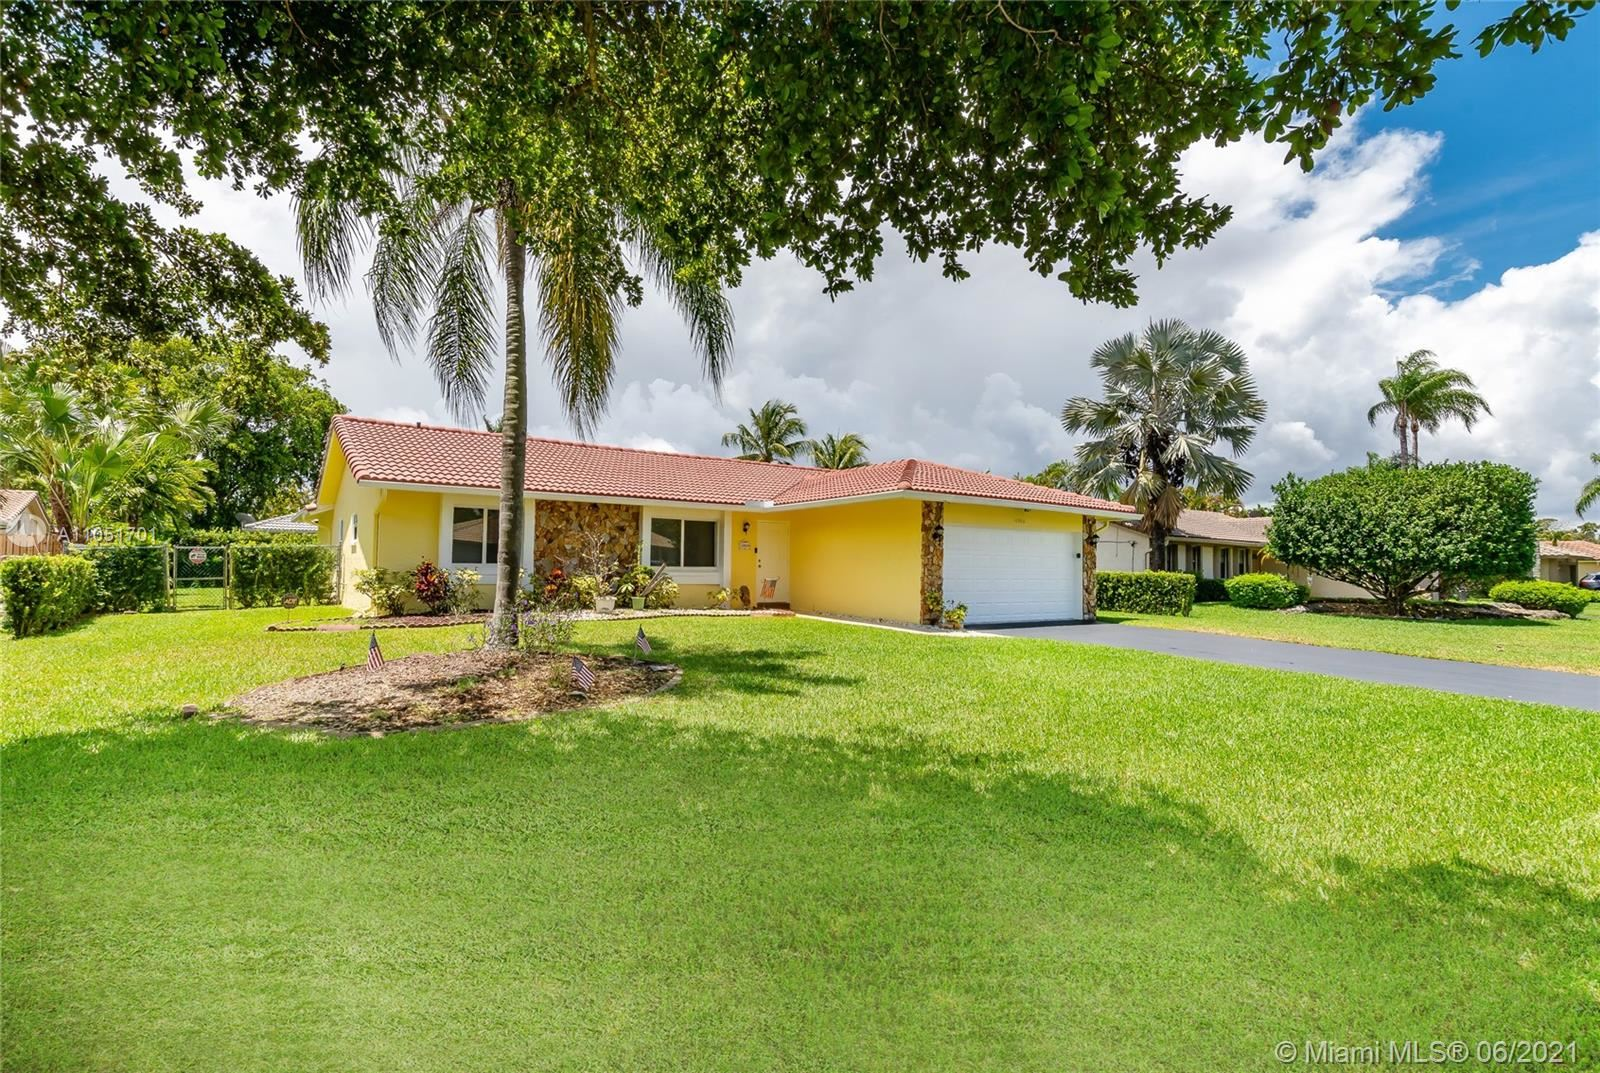 10900 NW 20th Dr, Coral Springs, FL 33071 - #: A11051701